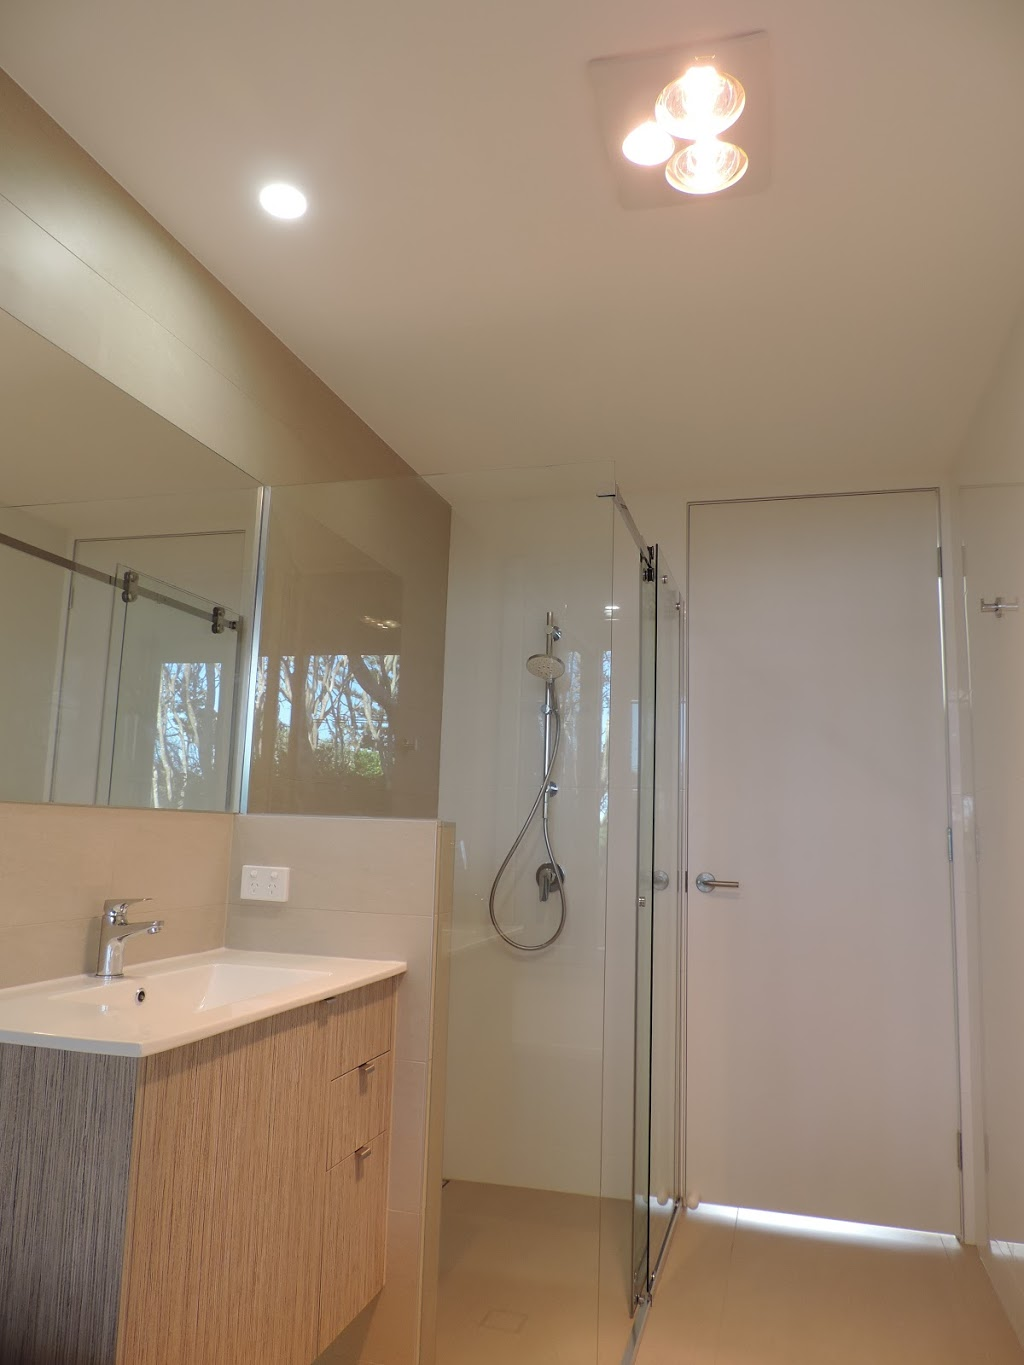 Zenith Electrical Solutions Pty Ltd   electrician   5/16 Tectonic Cres, Kunda Park QLD 4556, Australia   0754933840 OR +61 7 5493 3840